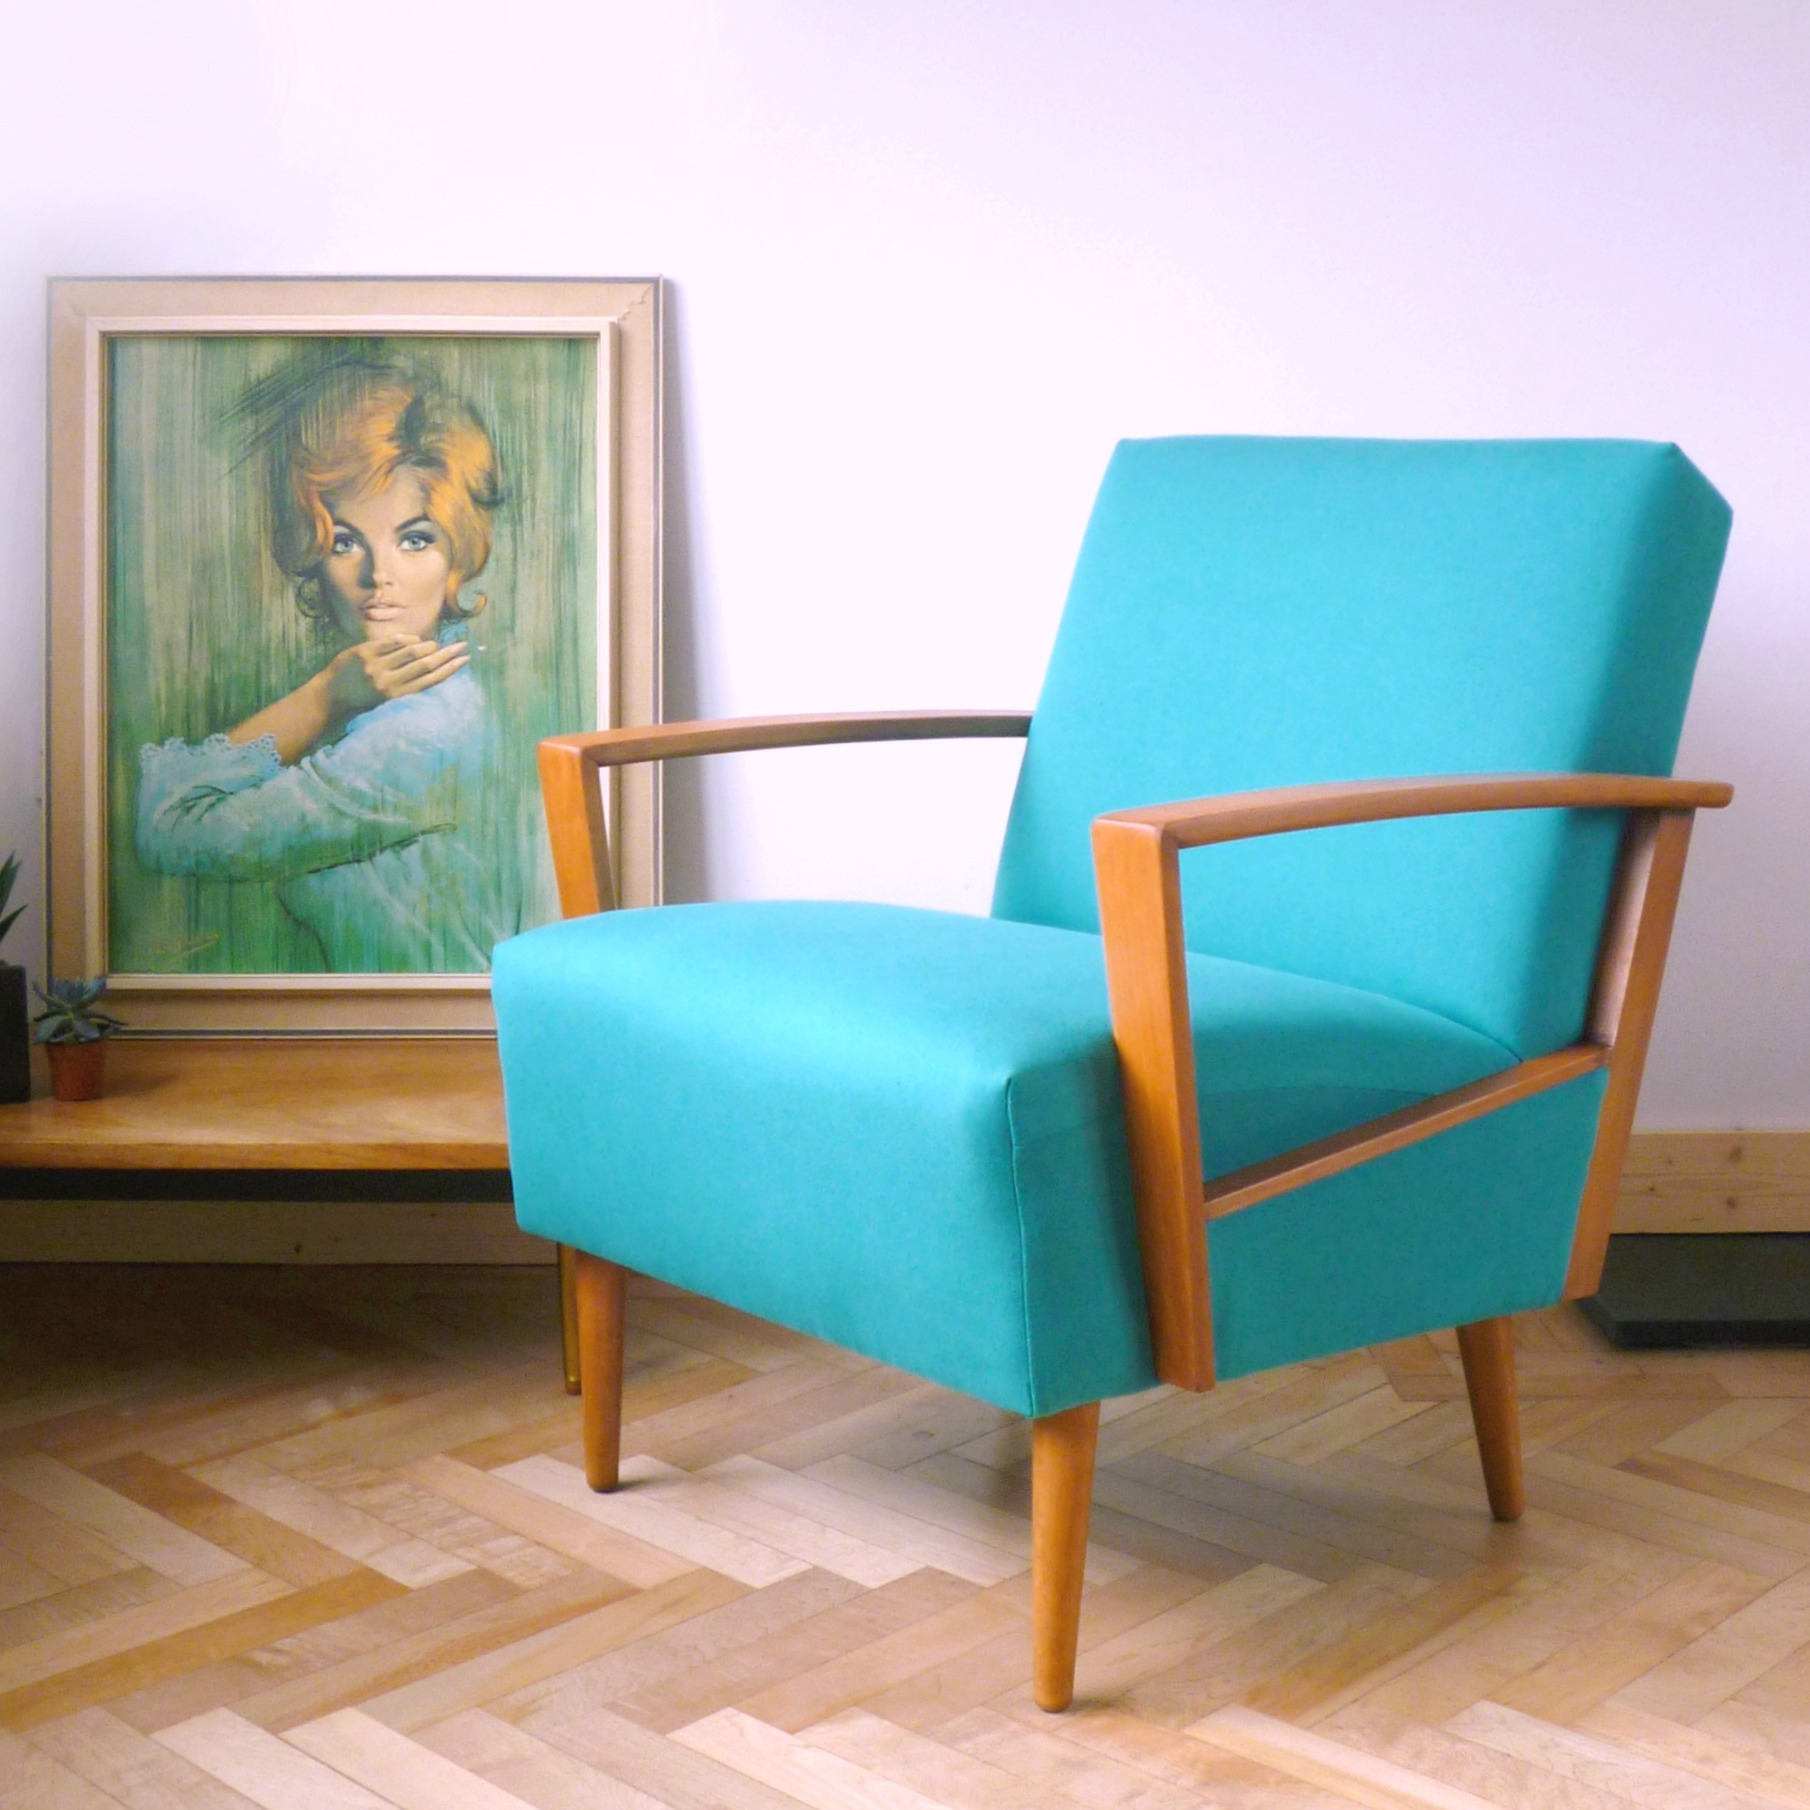 Teal Retro Danish Armchair From Drab To Dreamy Florrie Bill